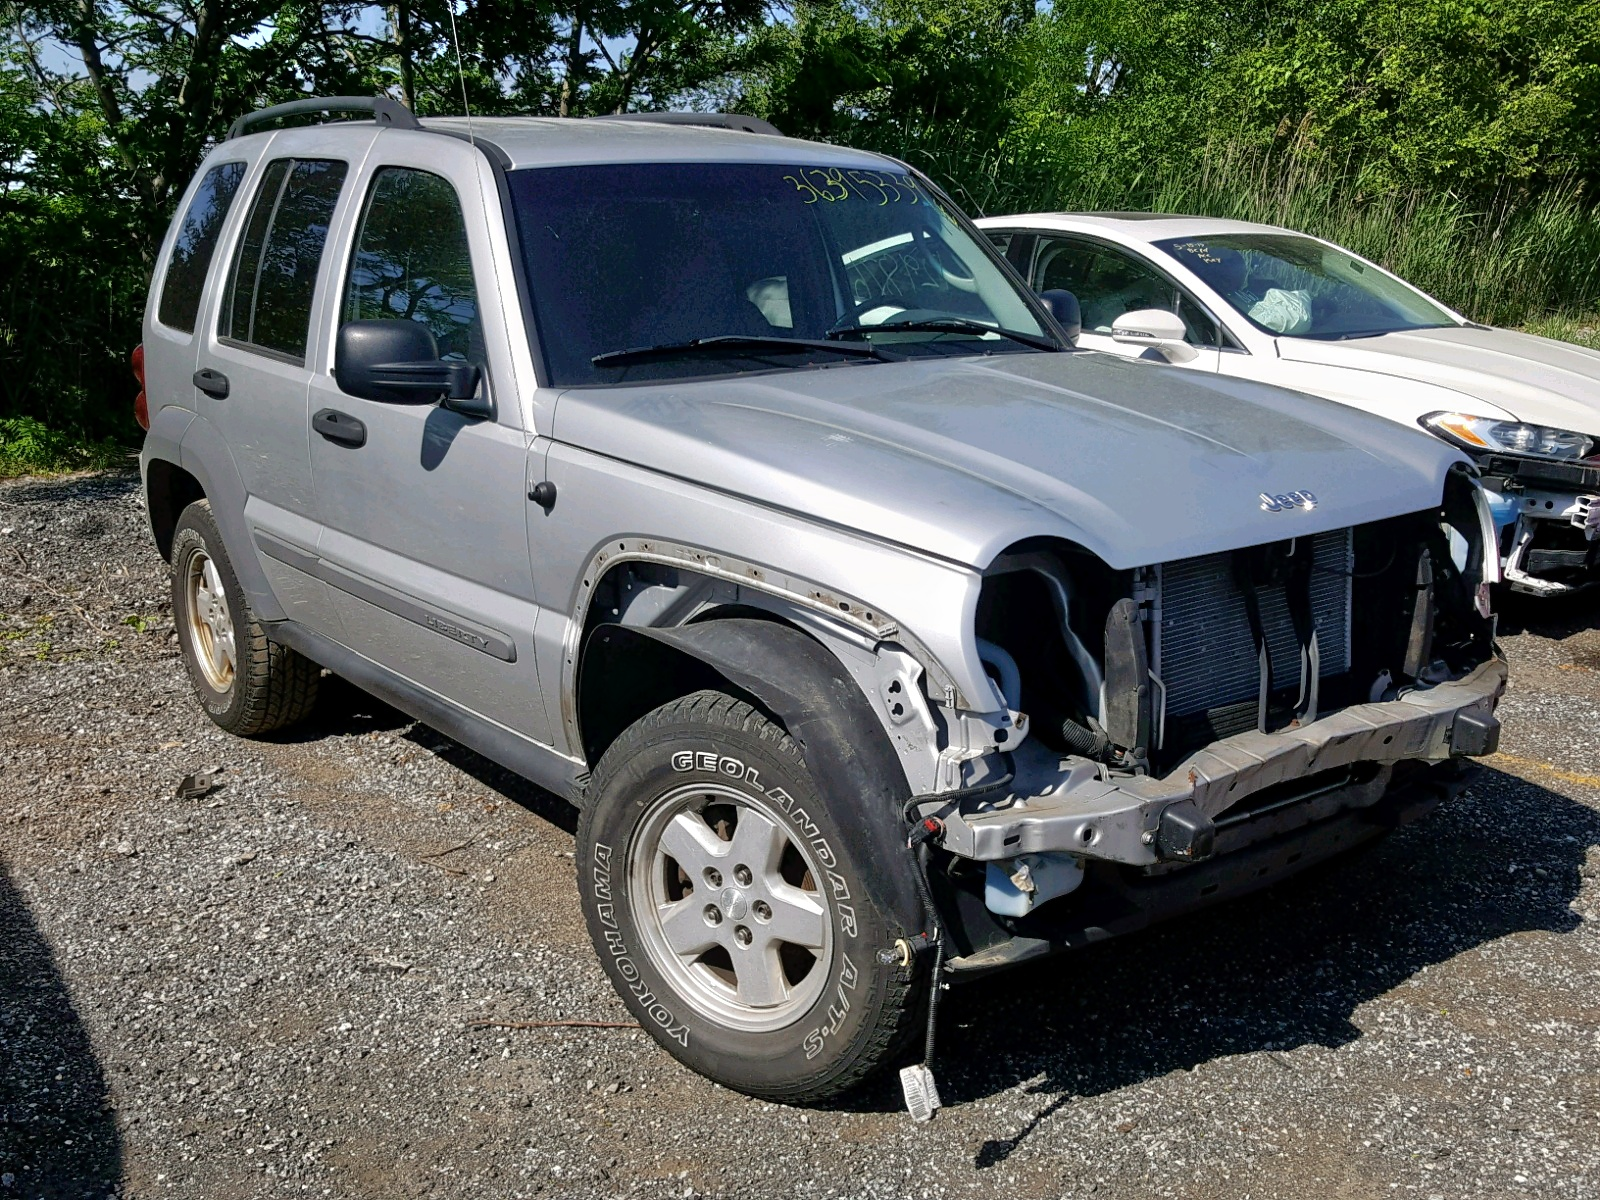 2005 Jeep Liberty Sp 3 7L 6 in MD - Baltimore